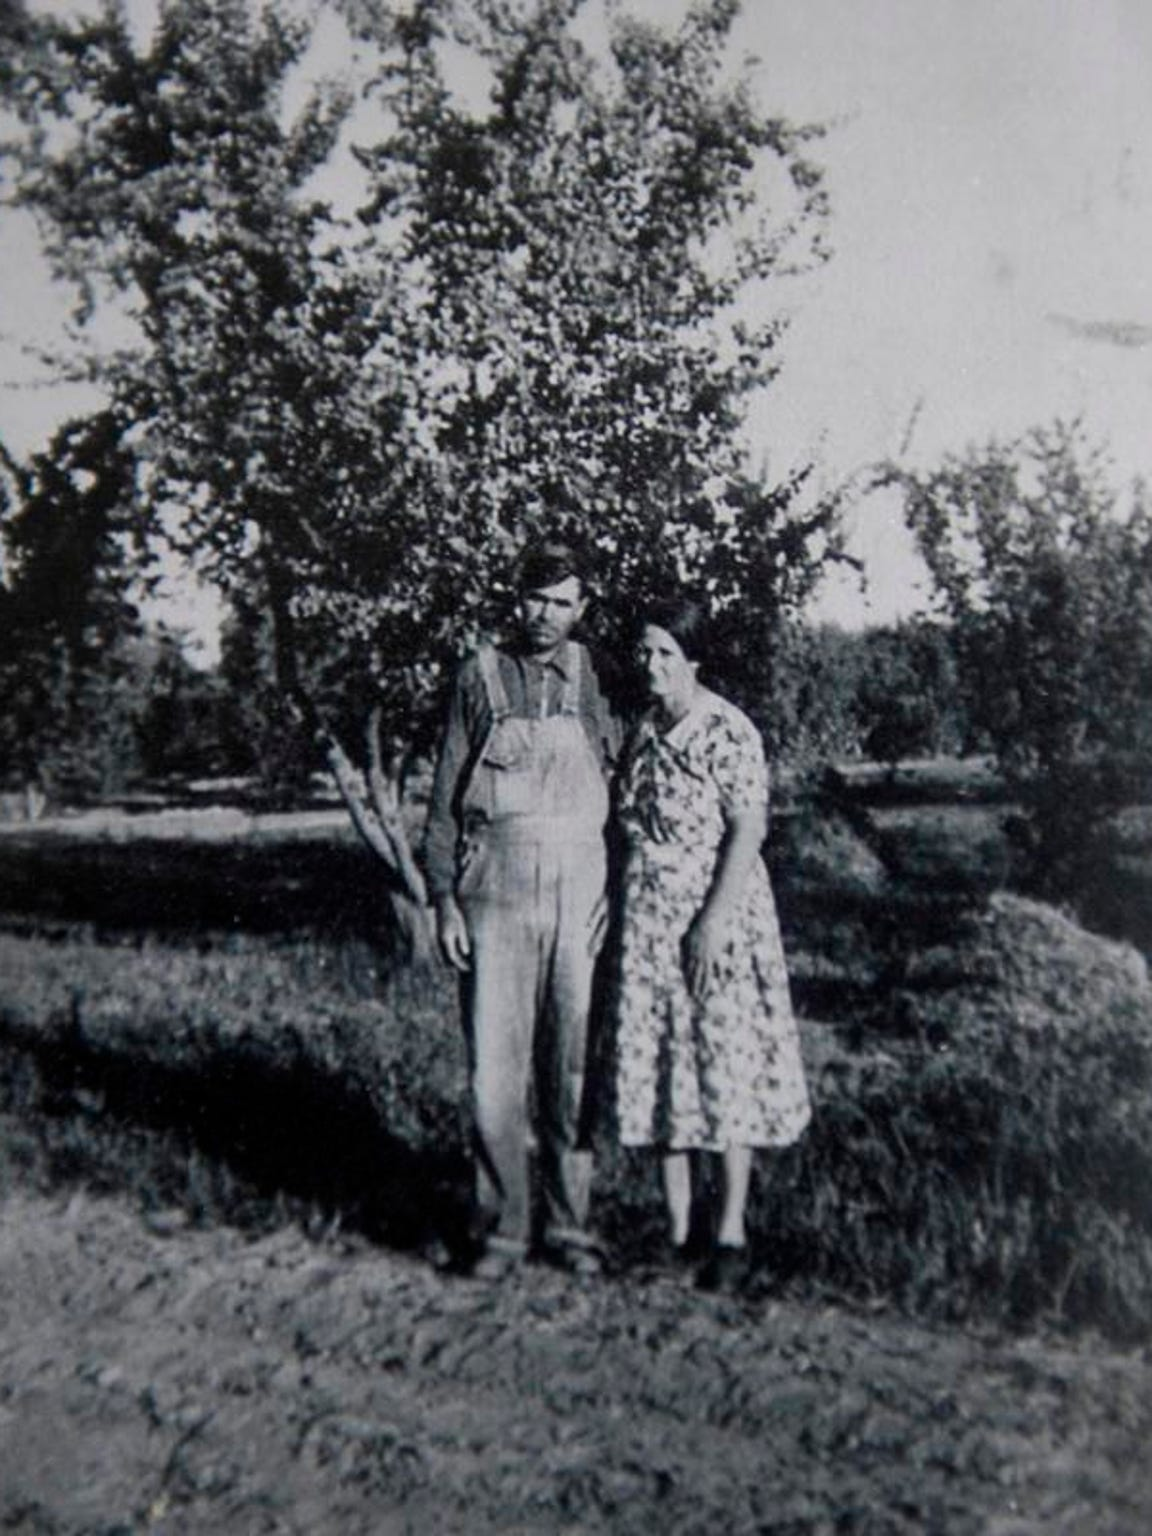 "Pictured are Eunice Kincade's parents, Roy and Samantha ""Mattie"" McCollum, standing in front of a peach tree at Tagus Ranch. Kincade, 87, who grew up on the ranch, said she's been to a few of the Tagus Ranch reunions but did not go to the last one. ""All the people I knew are gone now, just about,"" she said."